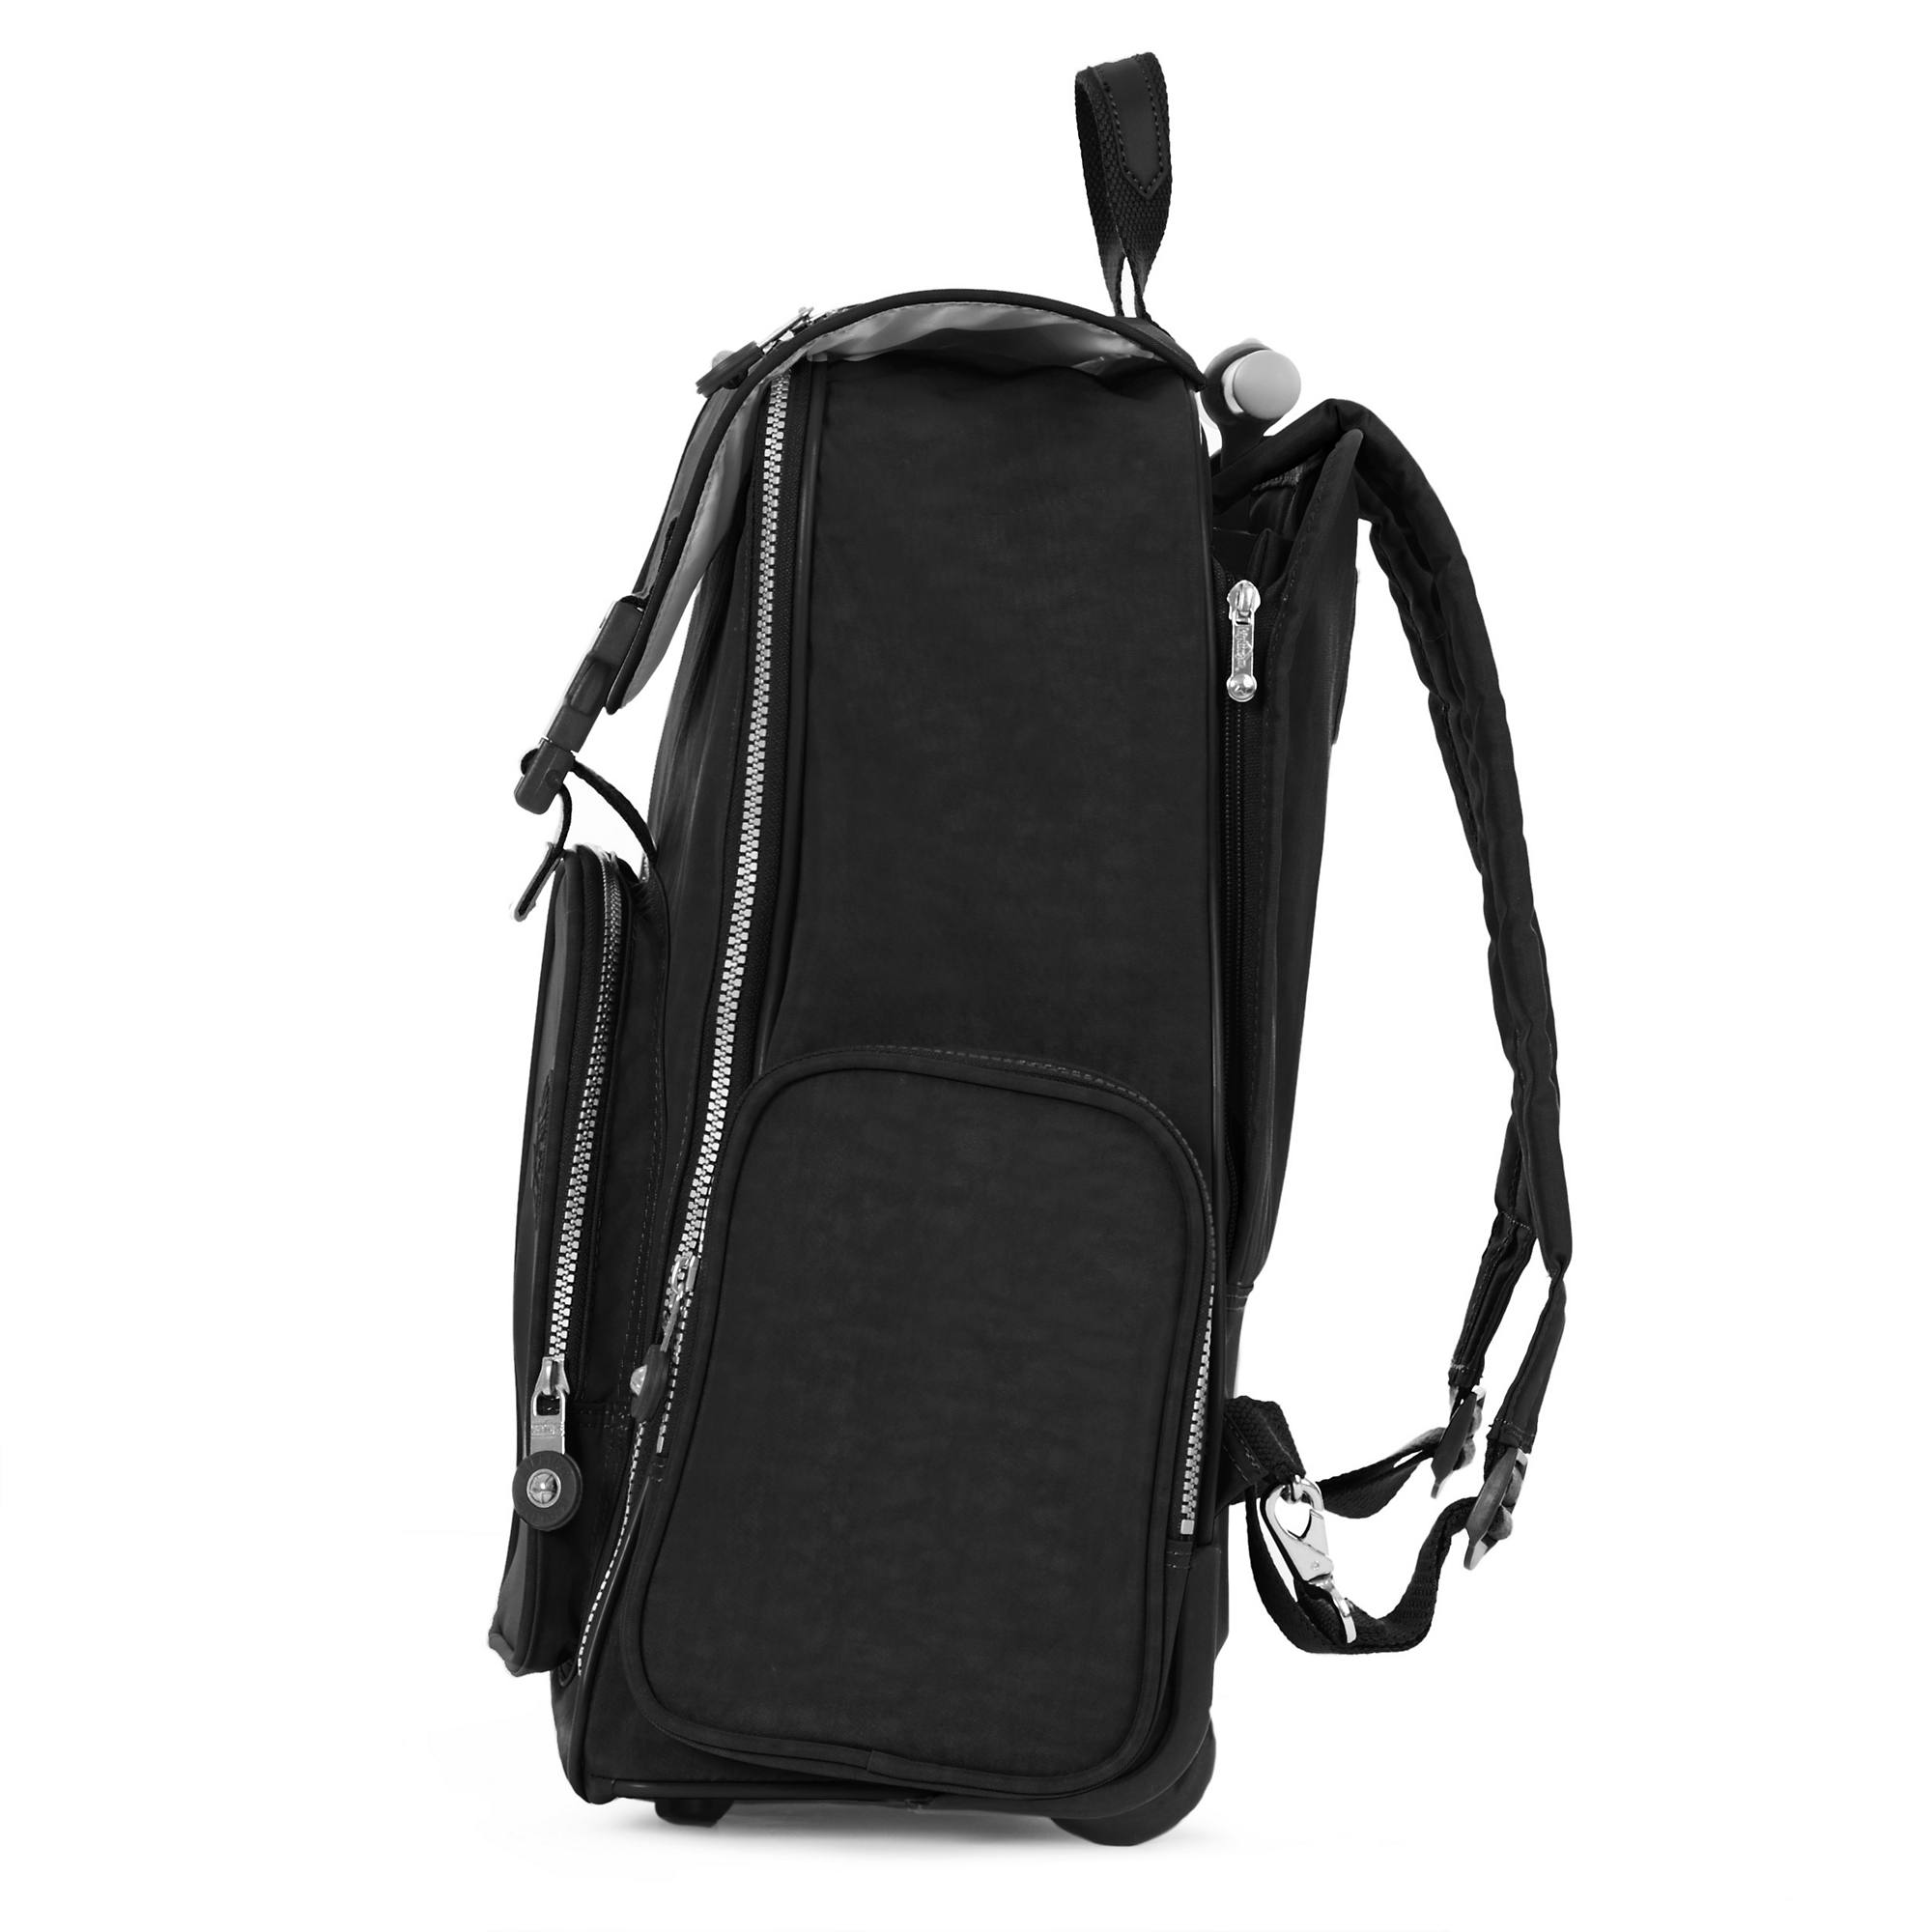 Alcatraz II Large Rolling Laptop Backpack  287accacc8b90